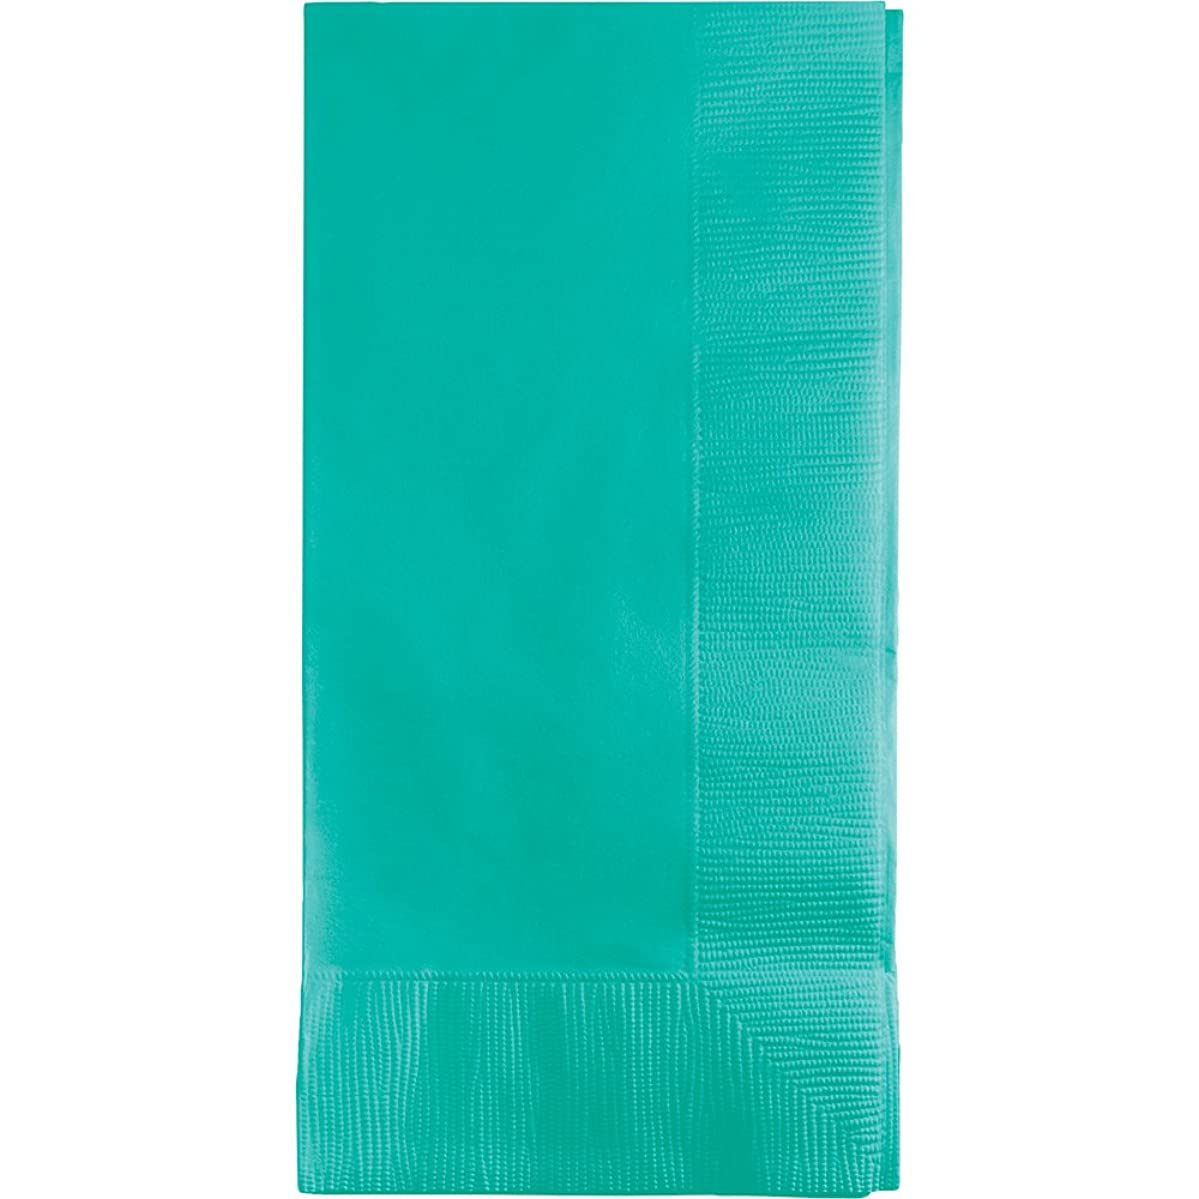 Creative Converting 324790 DINNER NAPKINS 2PLY 1/8FLD, One Size, Teal Lagoon